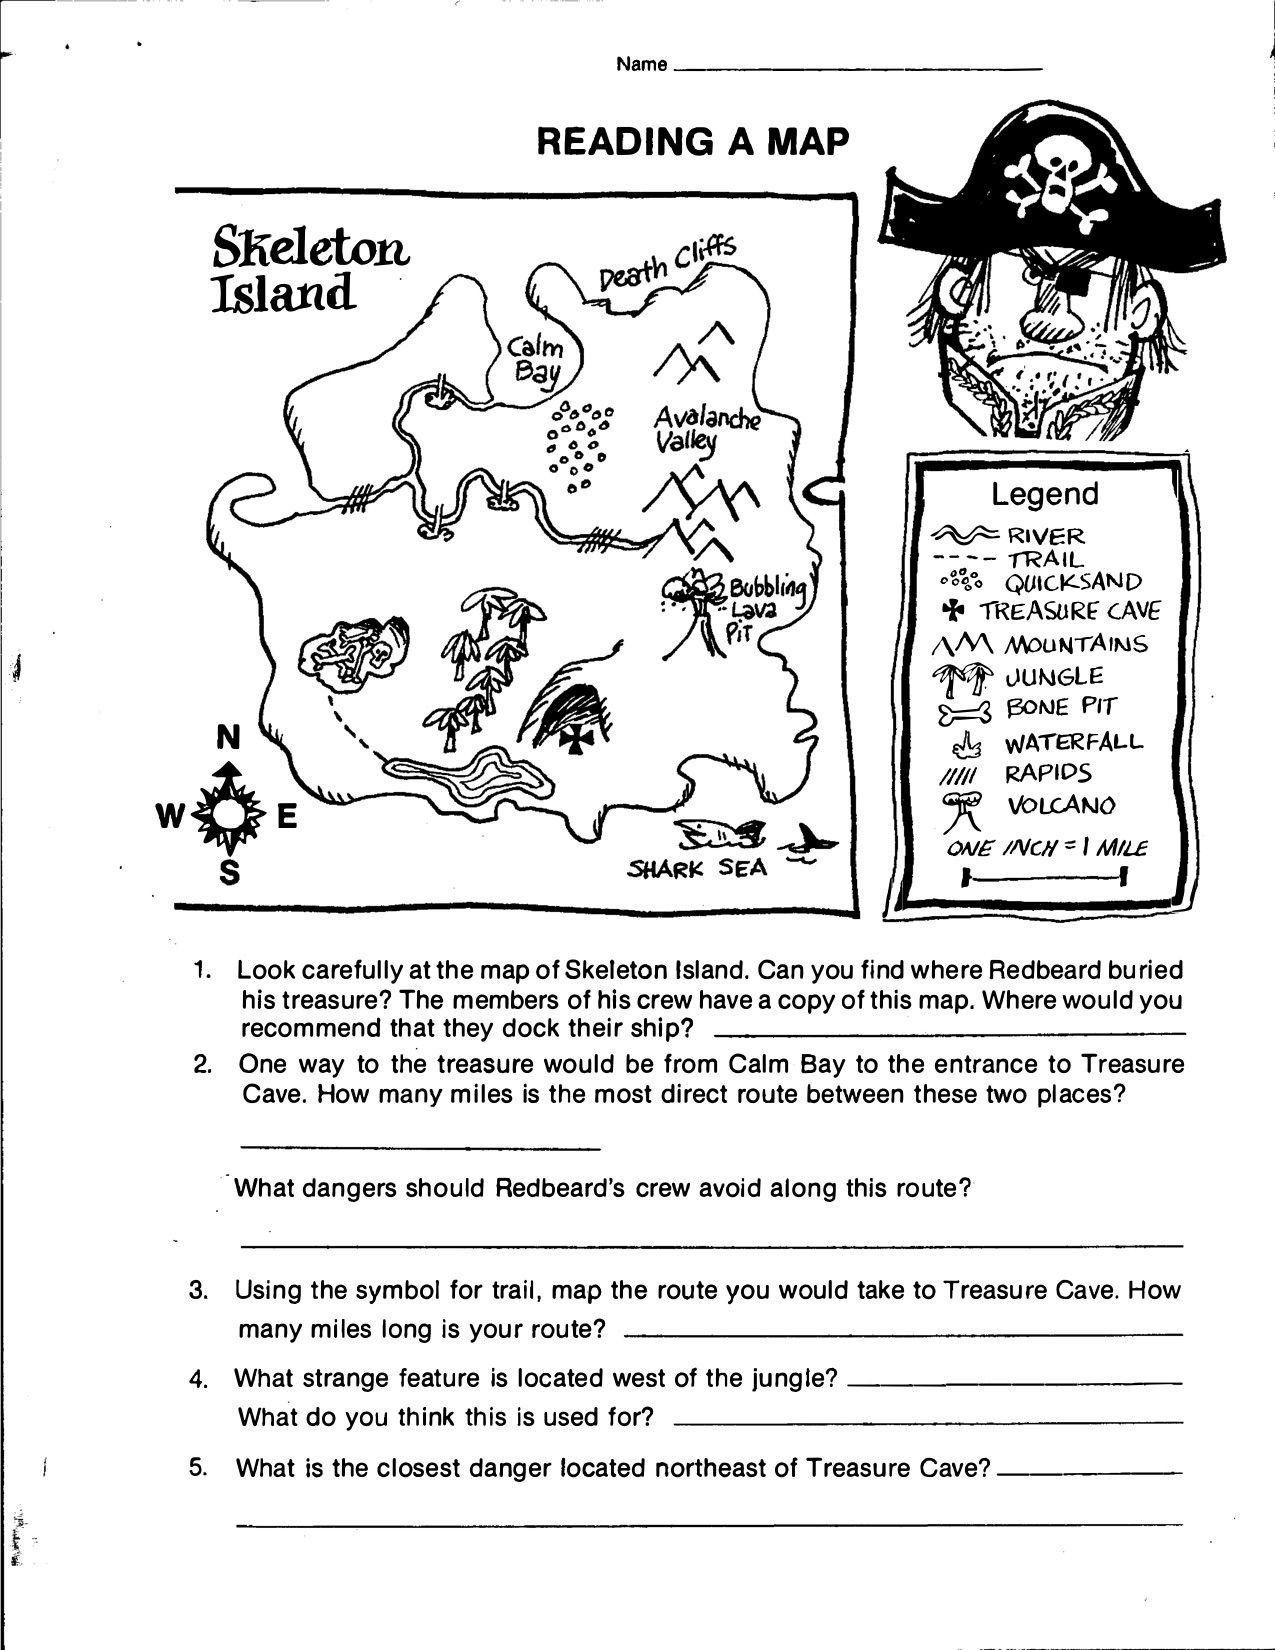 Reading A Map Worksheet Pin By Creatingsuccess On Reading